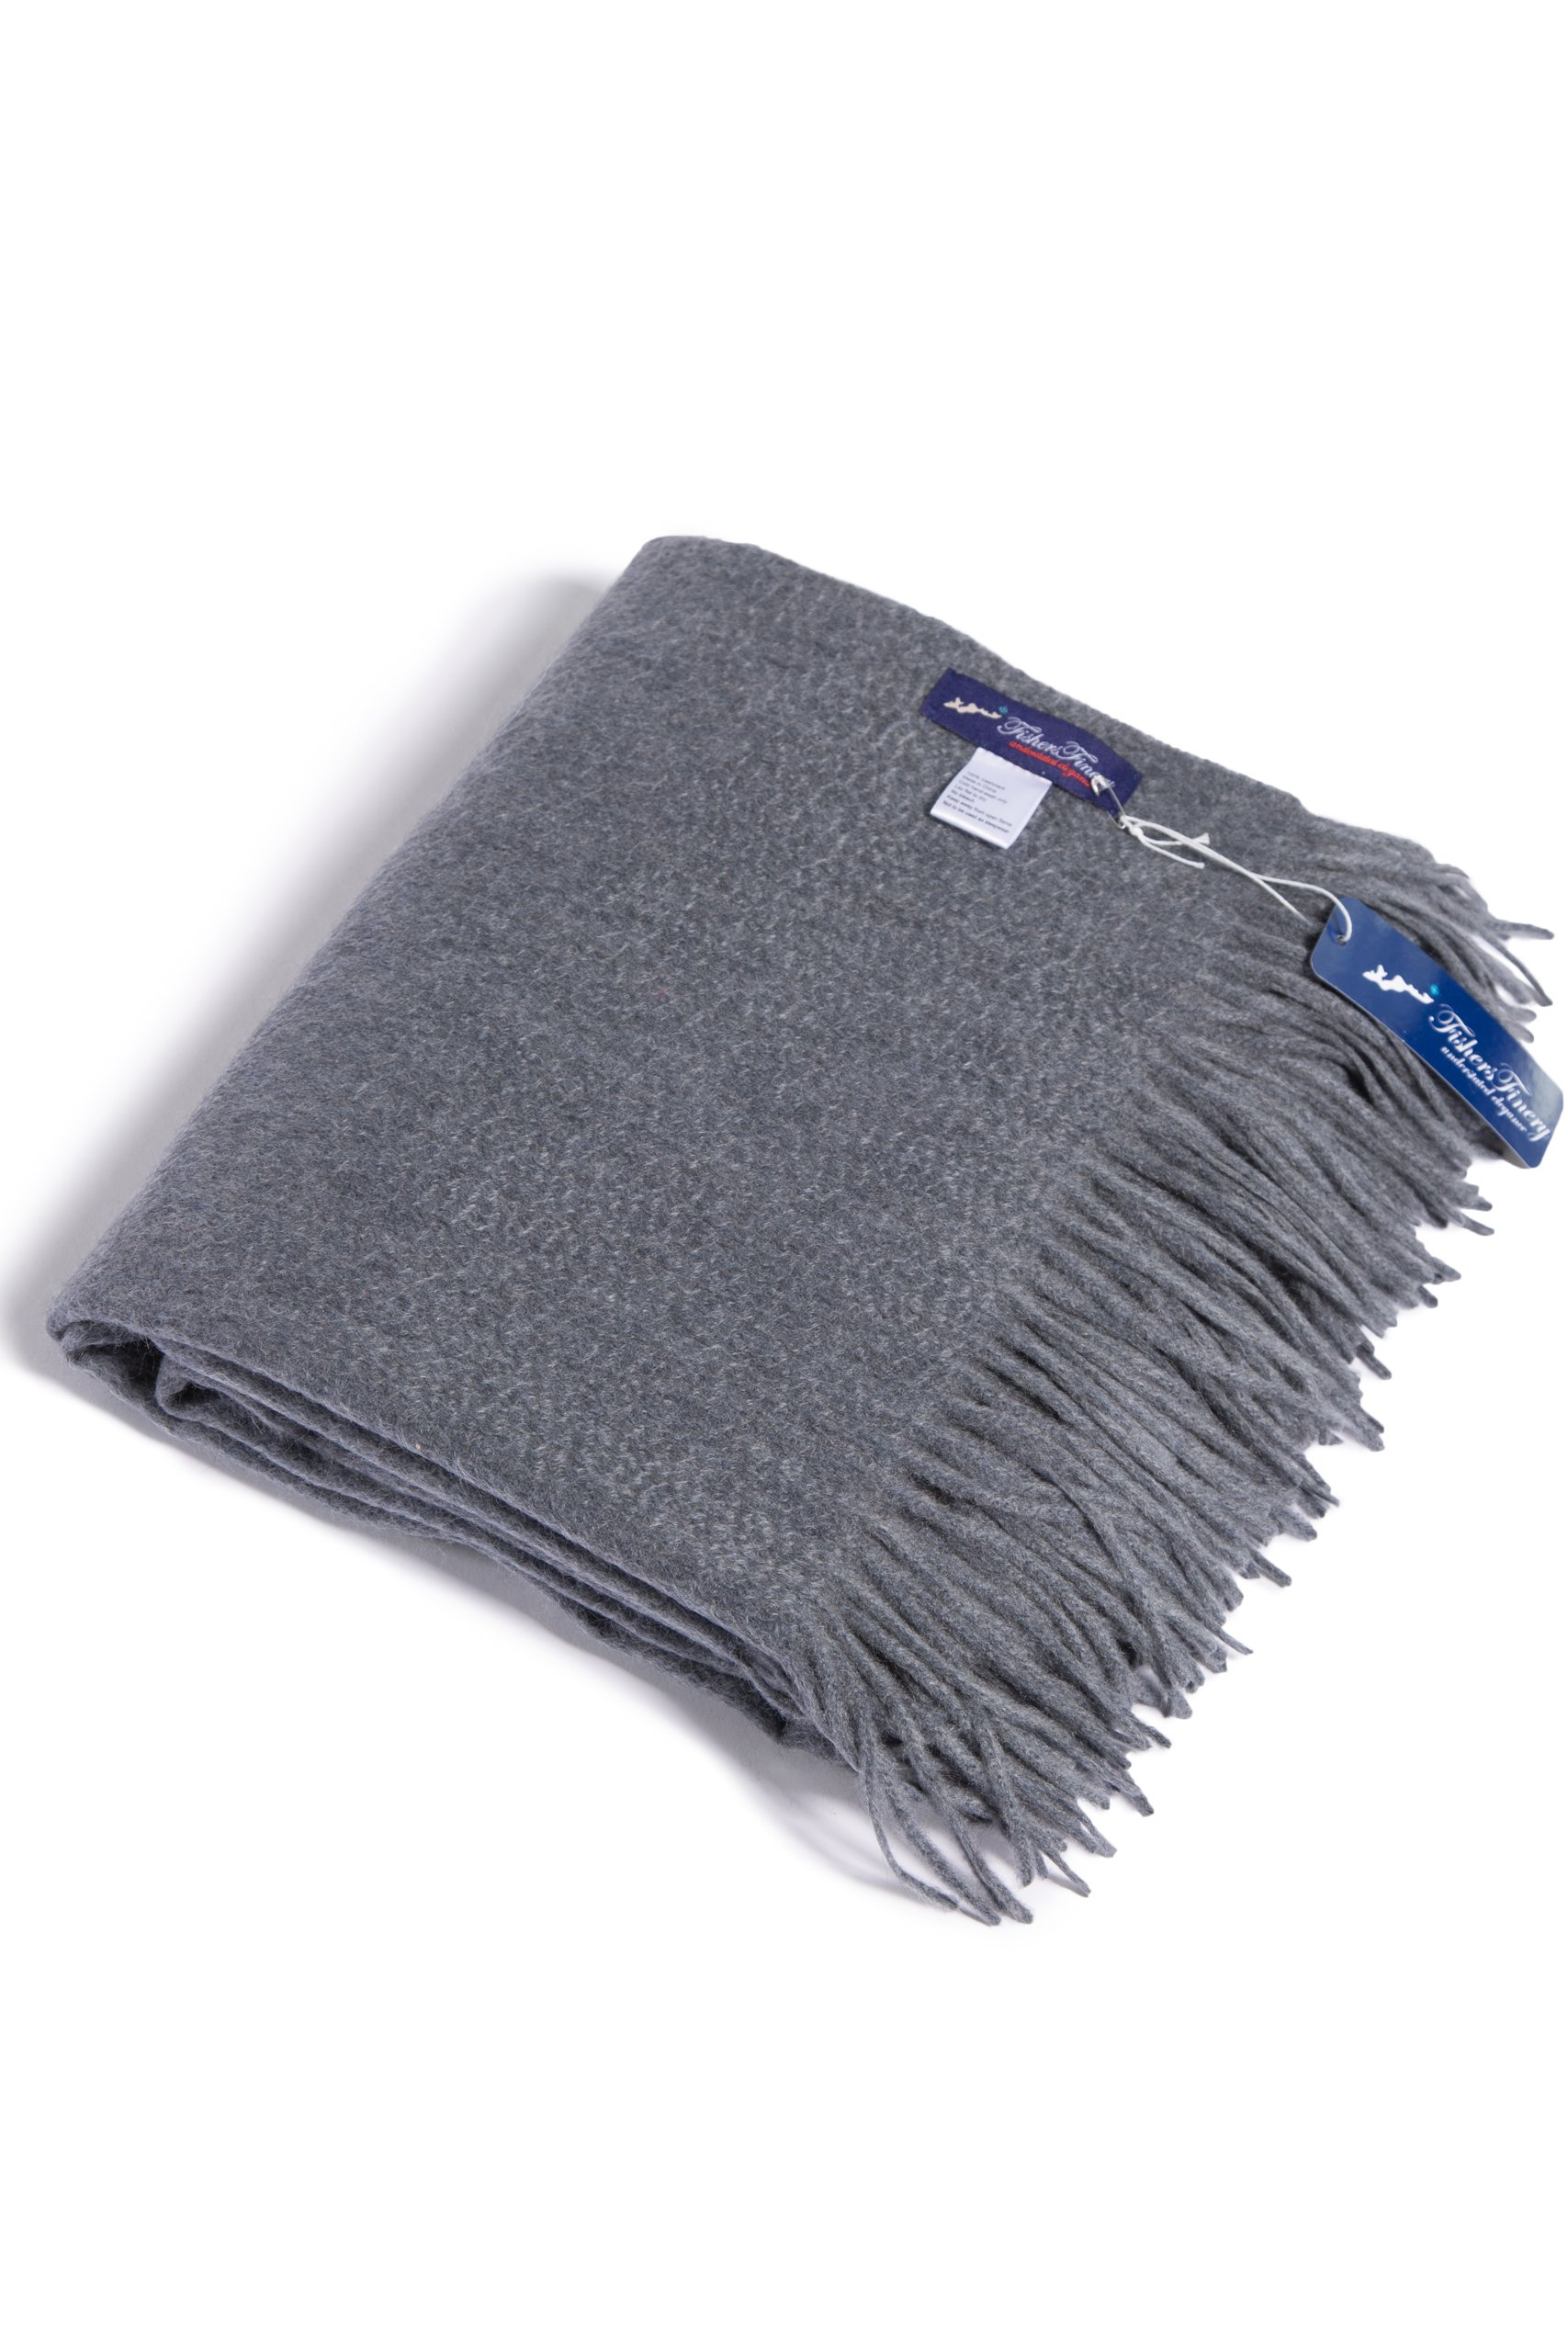 Fishers Finery 100% Pure Cashmere Fringe Throw Blanket; Christmas Gift (Gray)